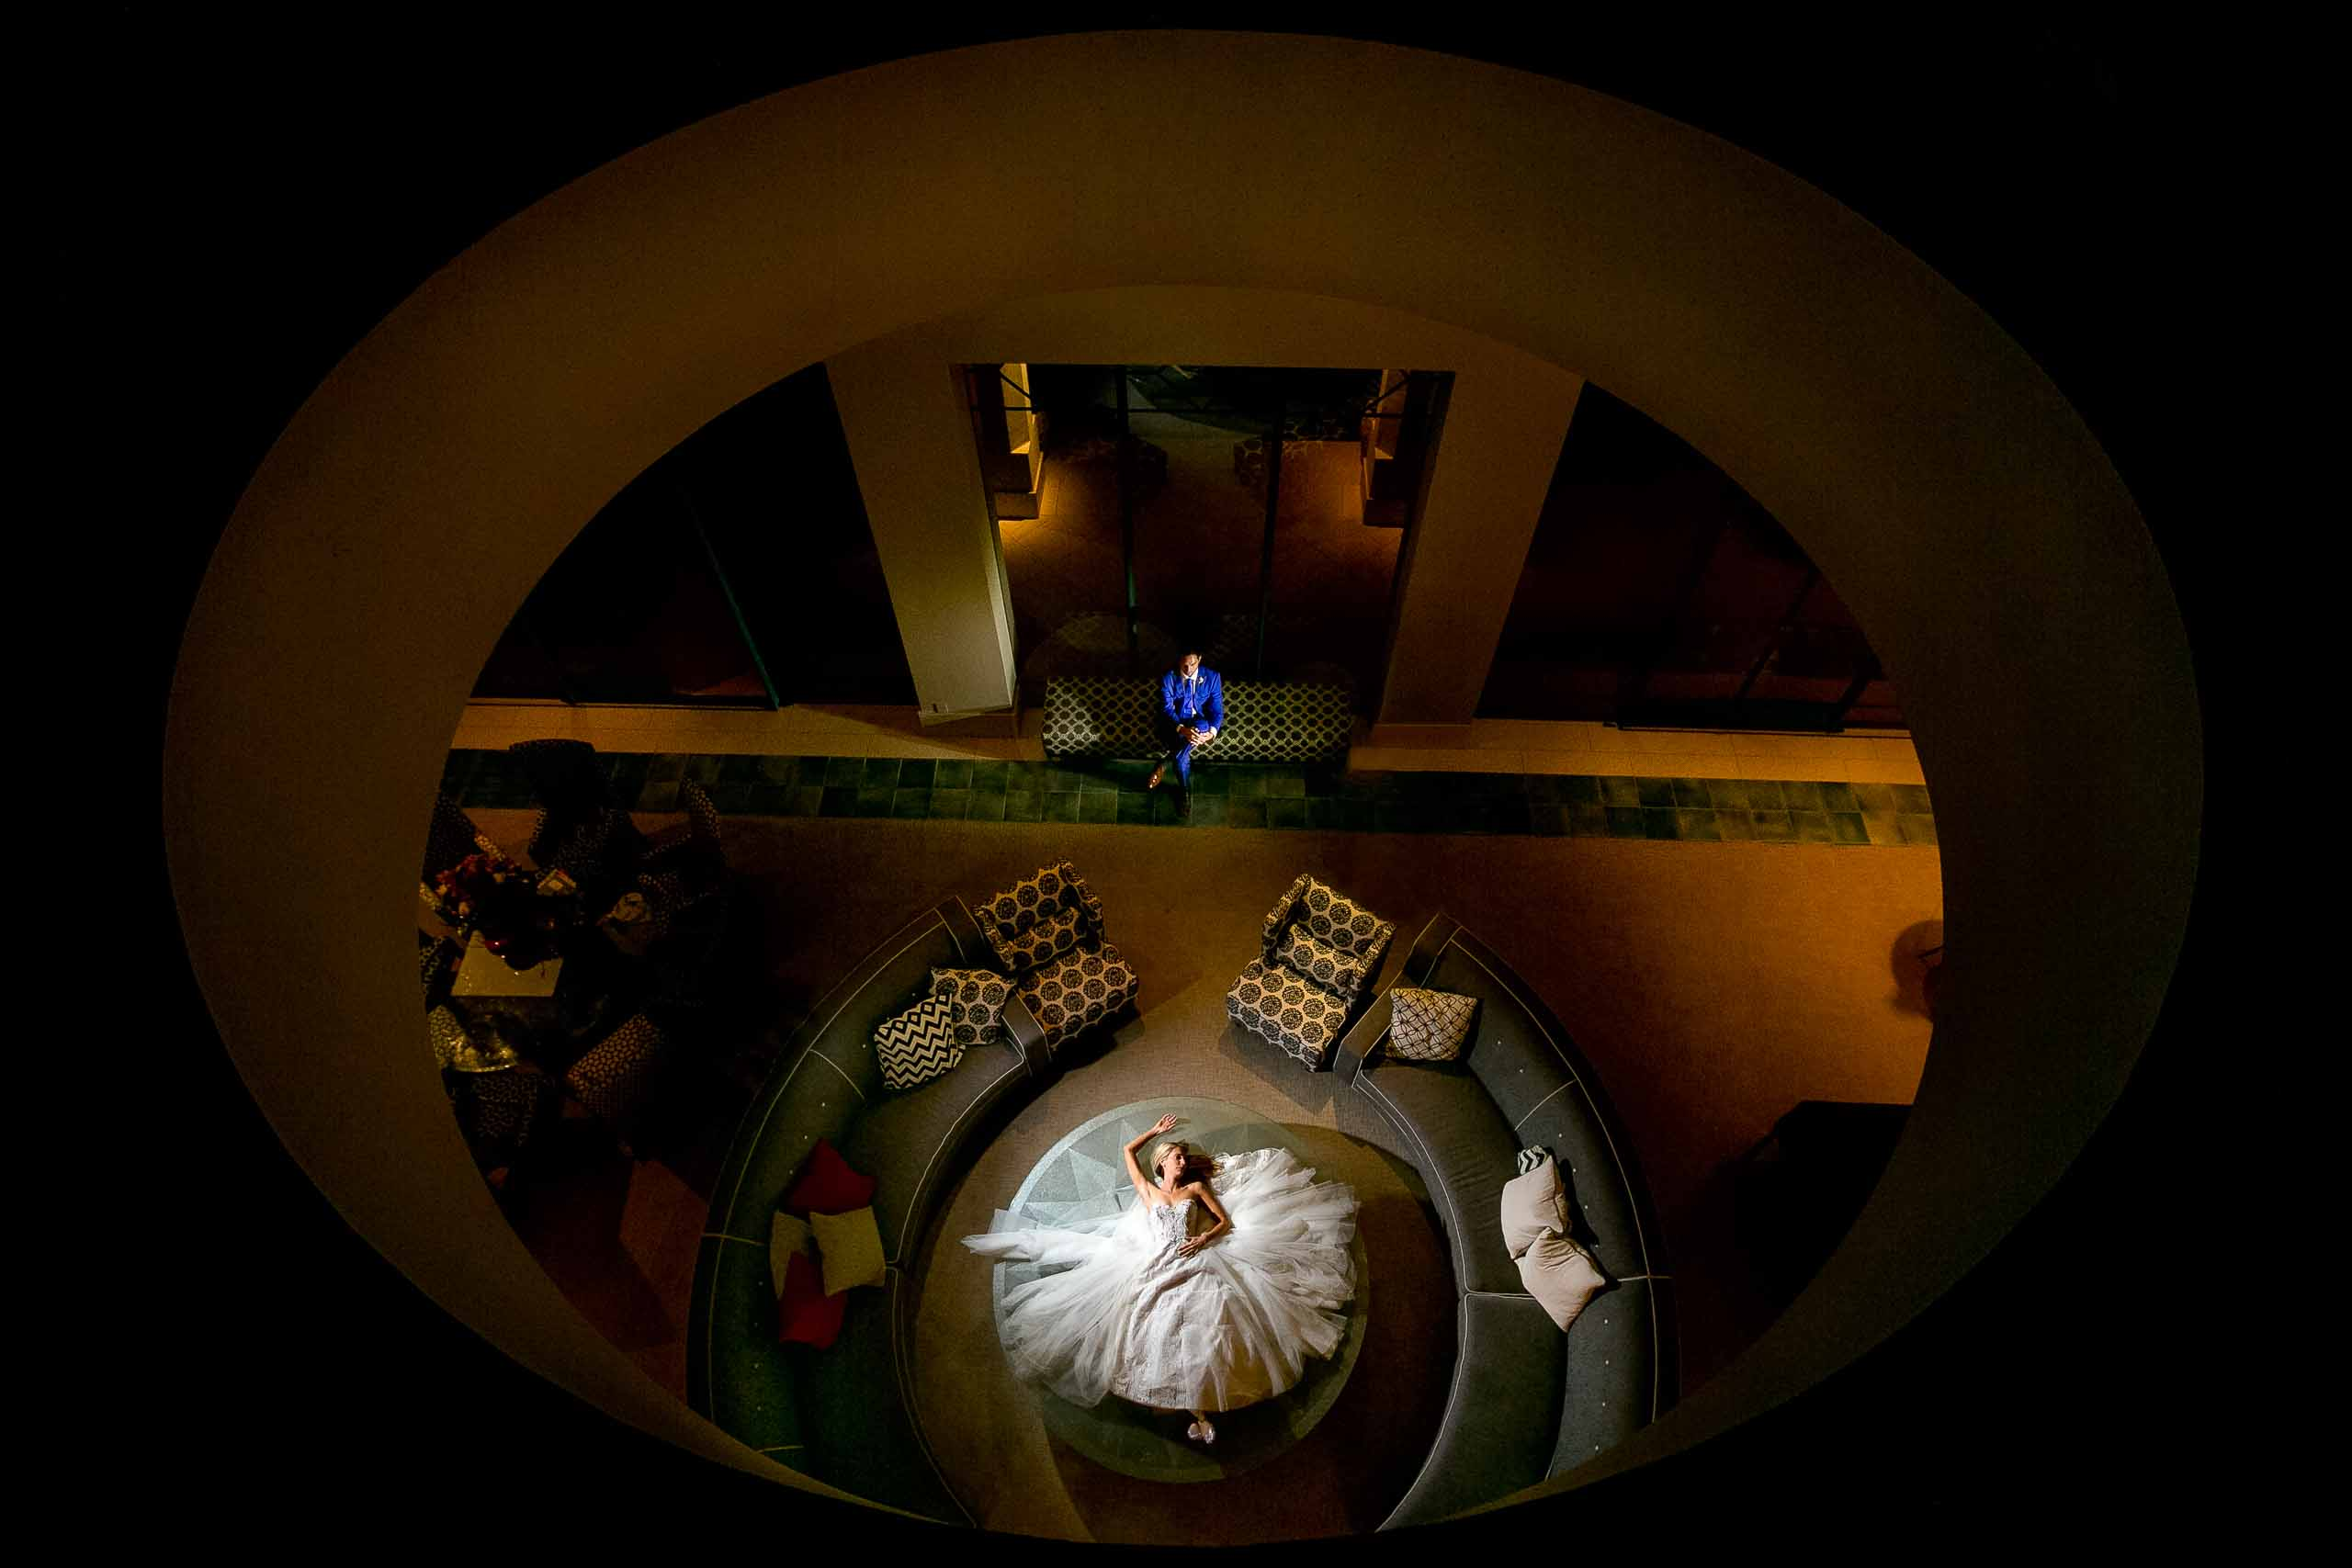 Creative portrait of a bride and groom photographed through a giant skylight window at a Merv Griffin Estate wedding in Palm Springs